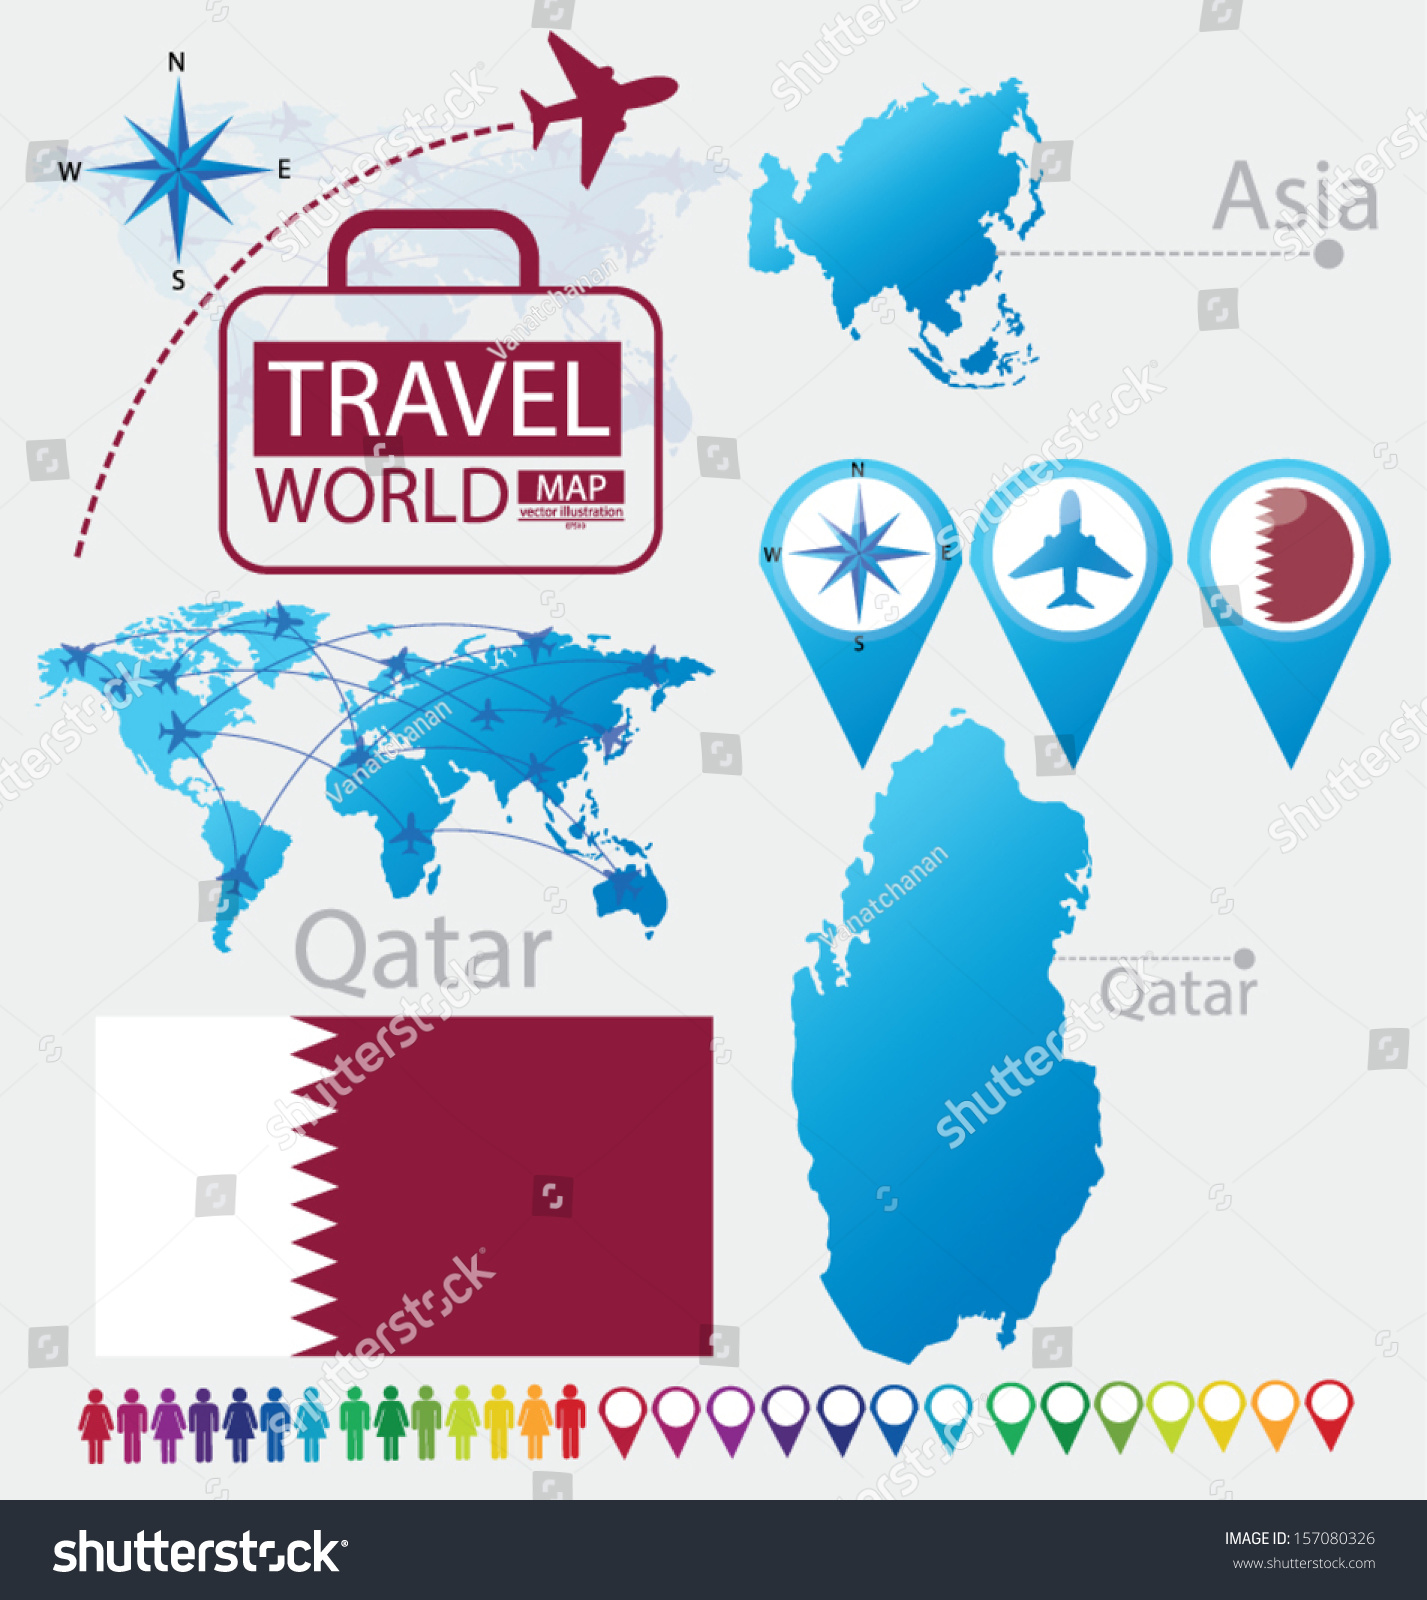 Qatar Flag Asia World Map Travel Stock Vector 157080326 Shutterstock